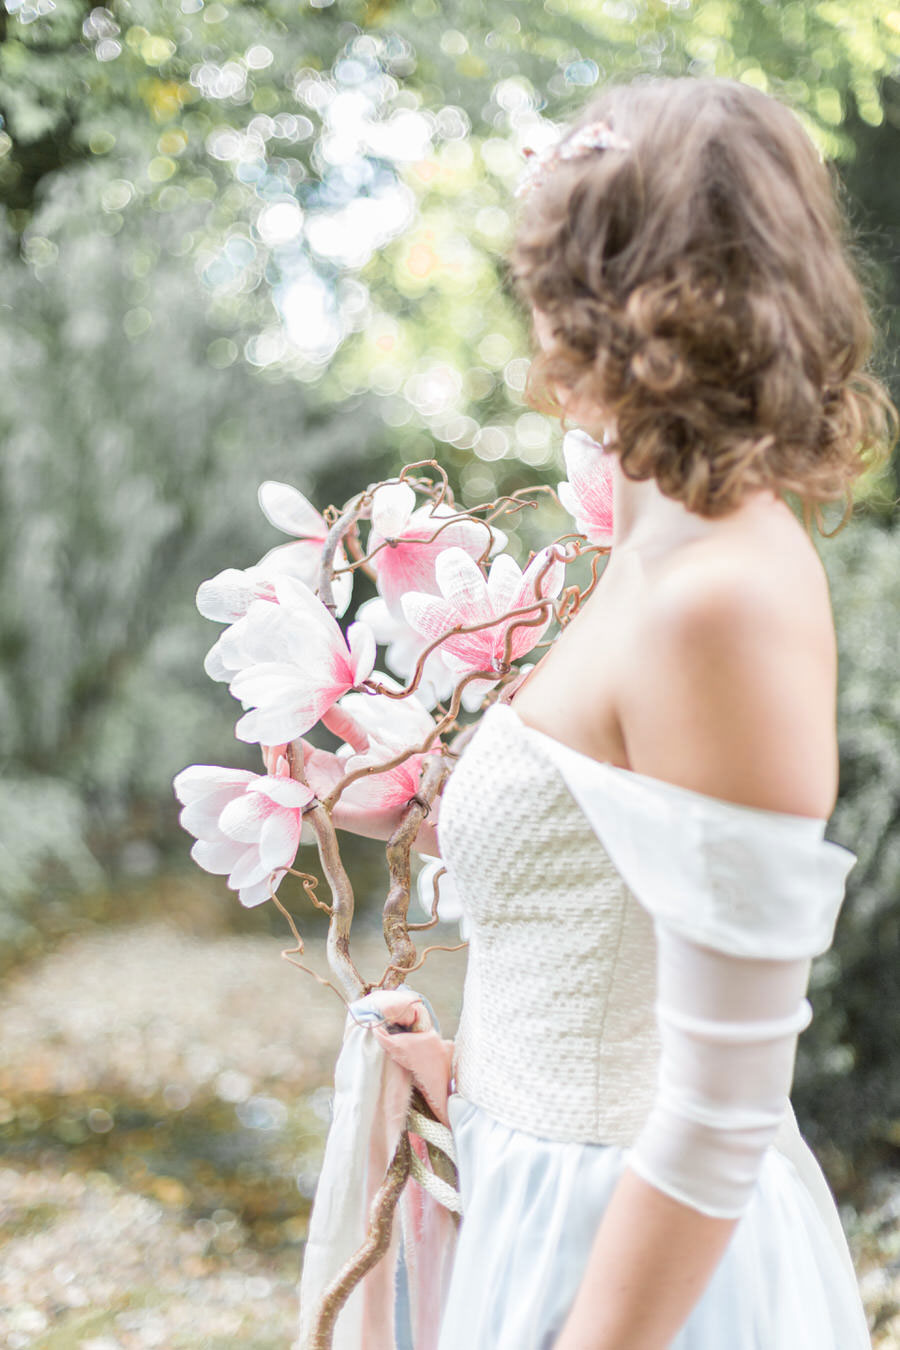 Natural Elements! A Fine-Art Inspired Editorial With Magnolia & Cherry Blossoms0097